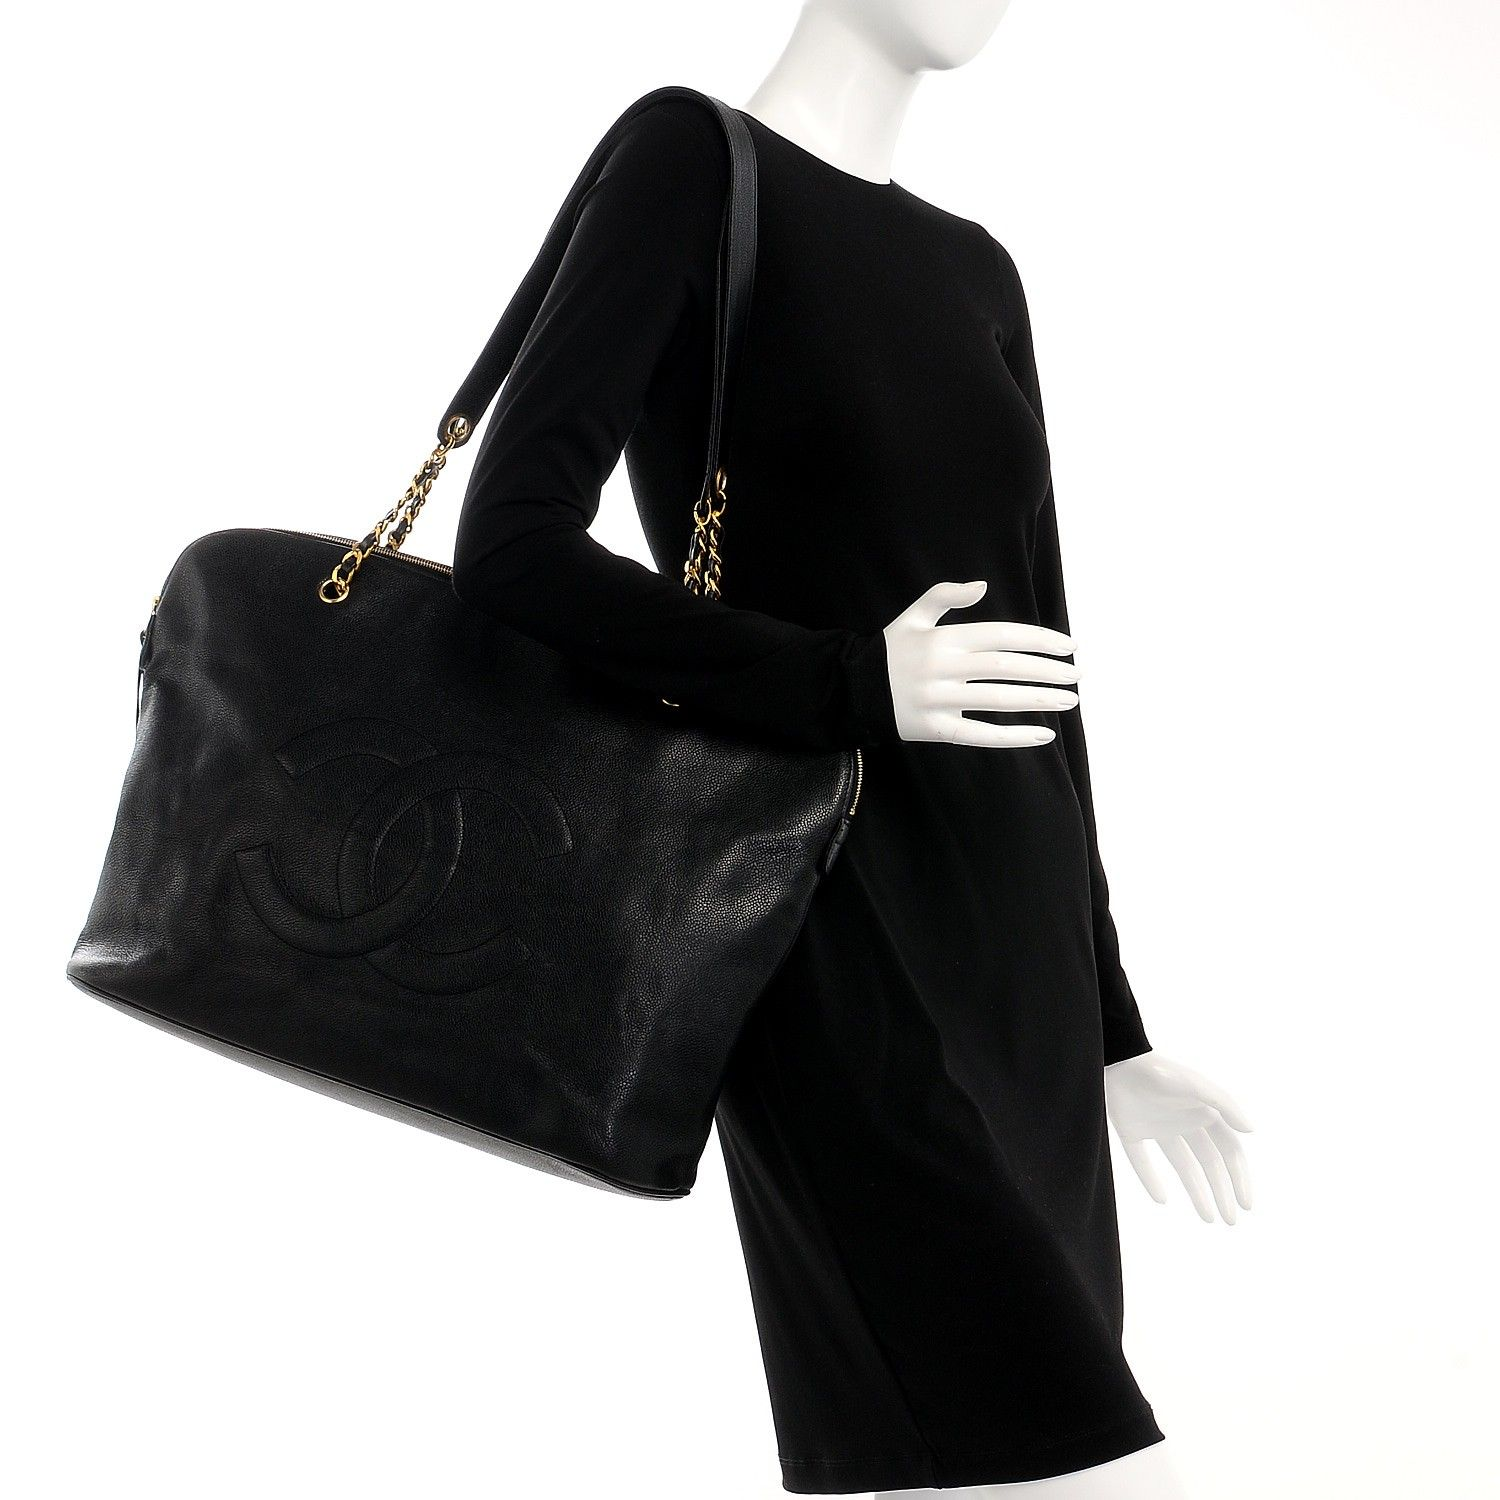 665aa1af9c7c Black Leather · This is an authentic CHANEL Vintage Caviar Large CC Shoulder  Bag in Black. This chic